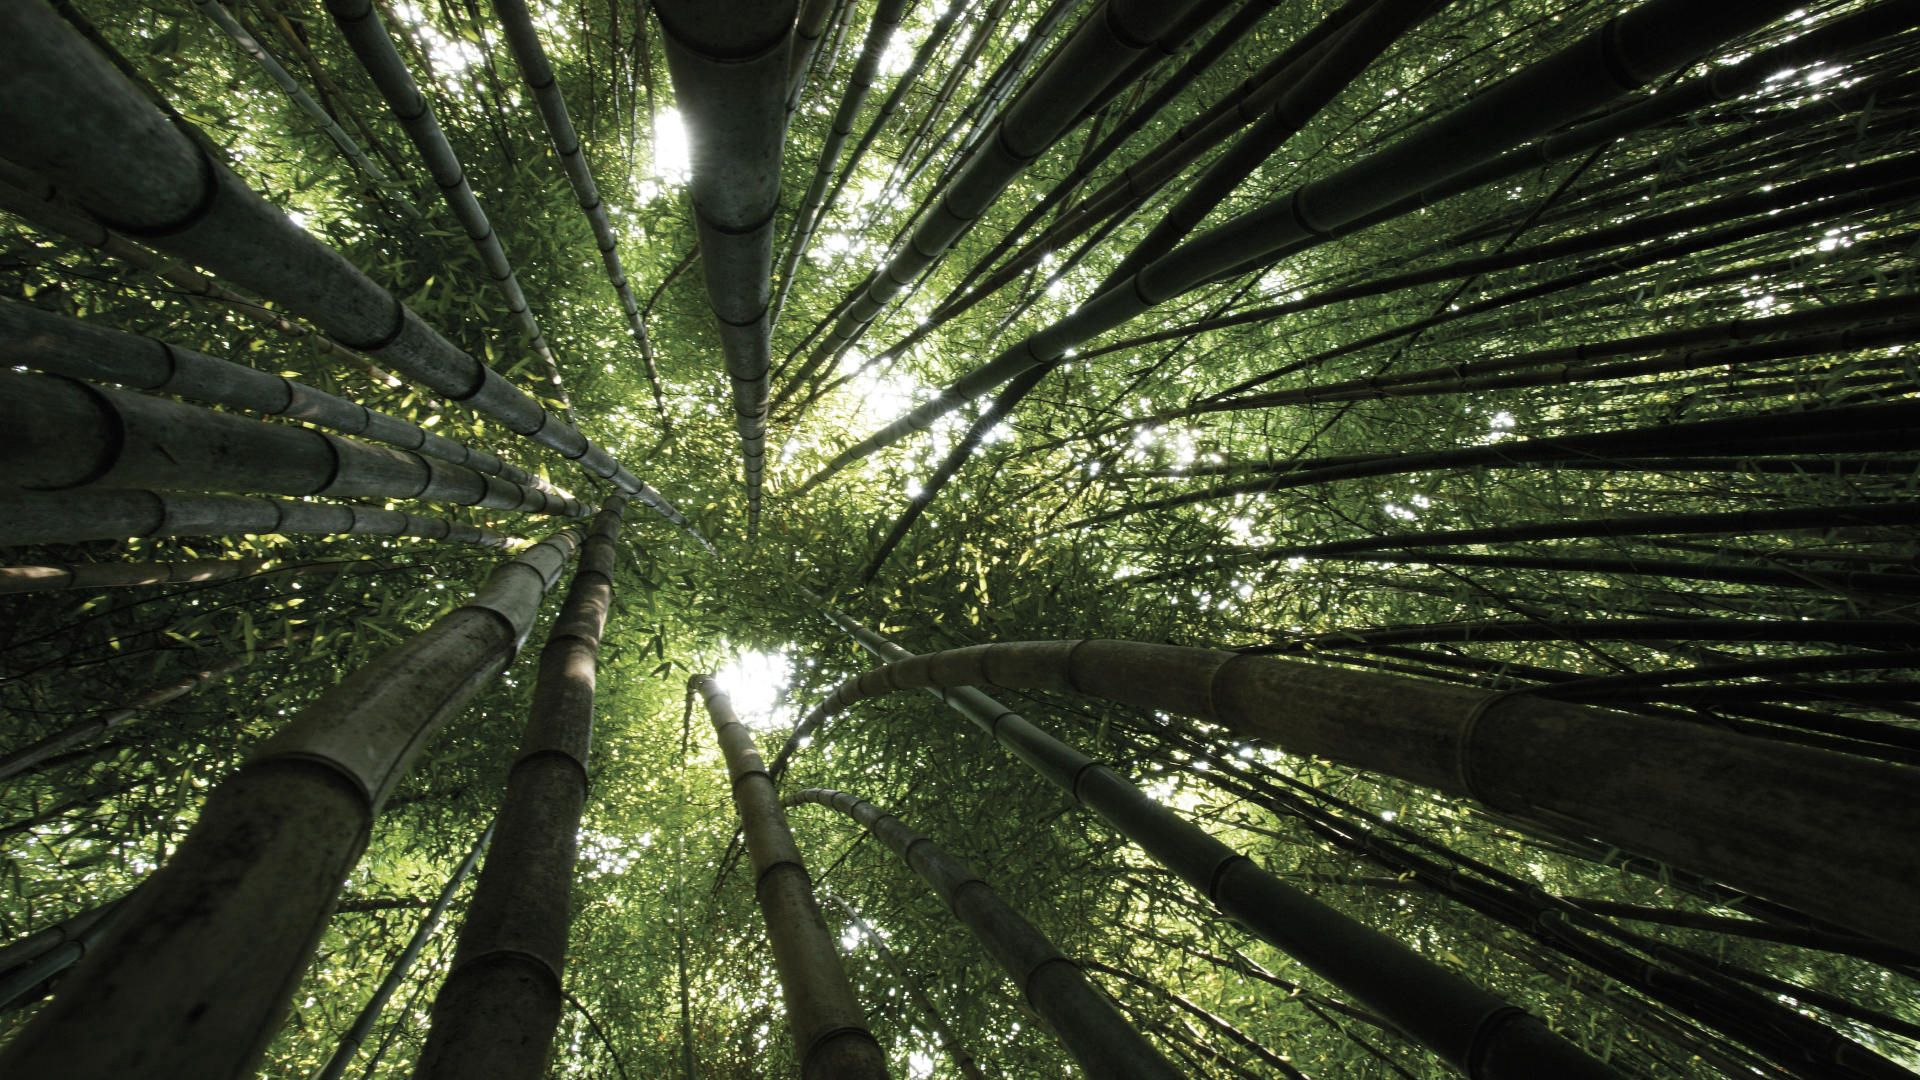 142273 download wallpaper Nature, Bamboo, Trees, Crowns, Crown, From Below screensavers and pictures for free